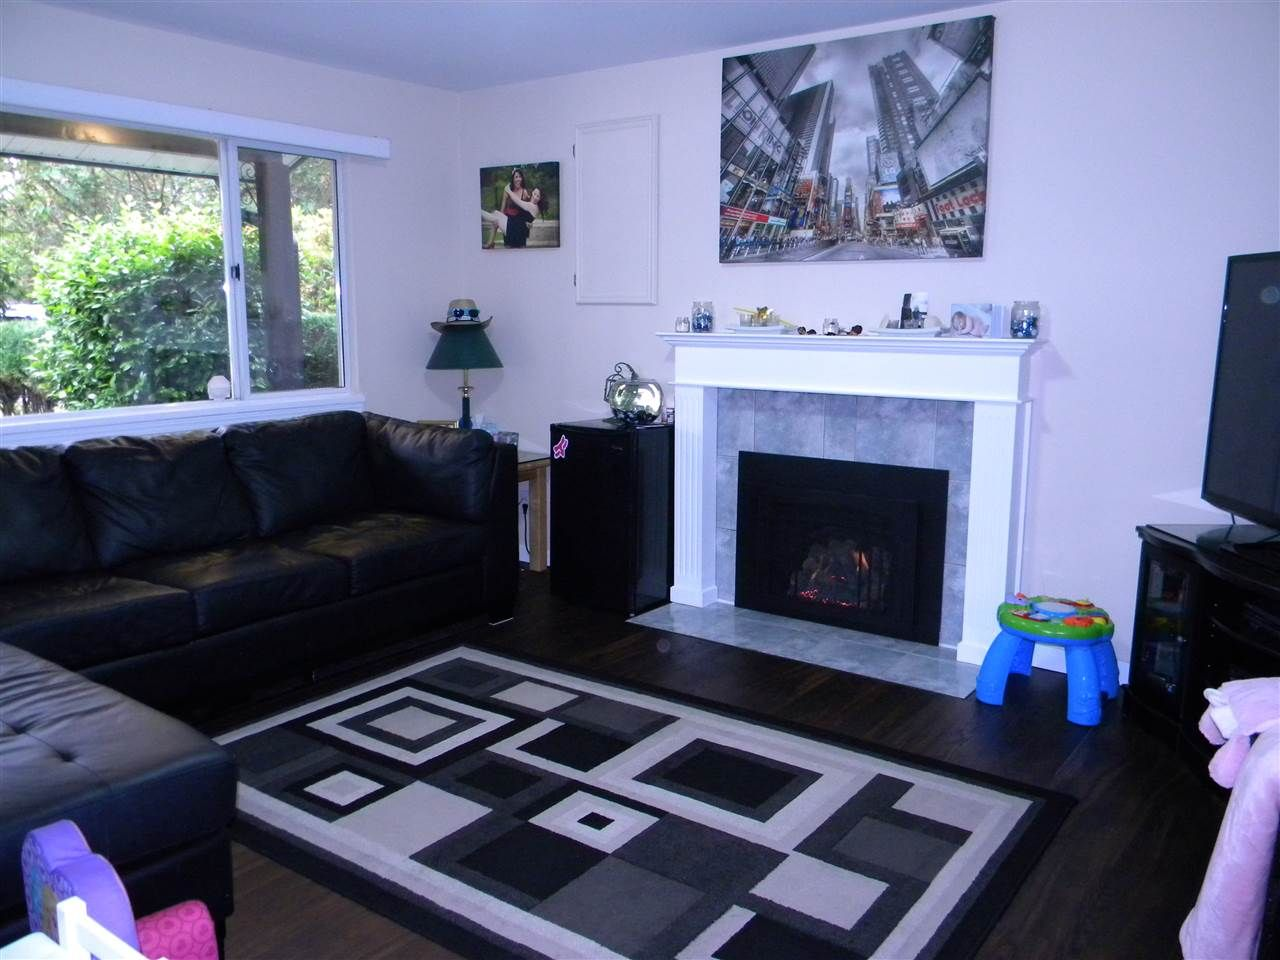 Photo 11: Photos: 14251 71 Avenue in Surrey: East Newton House for sale : MLS®# R2075211